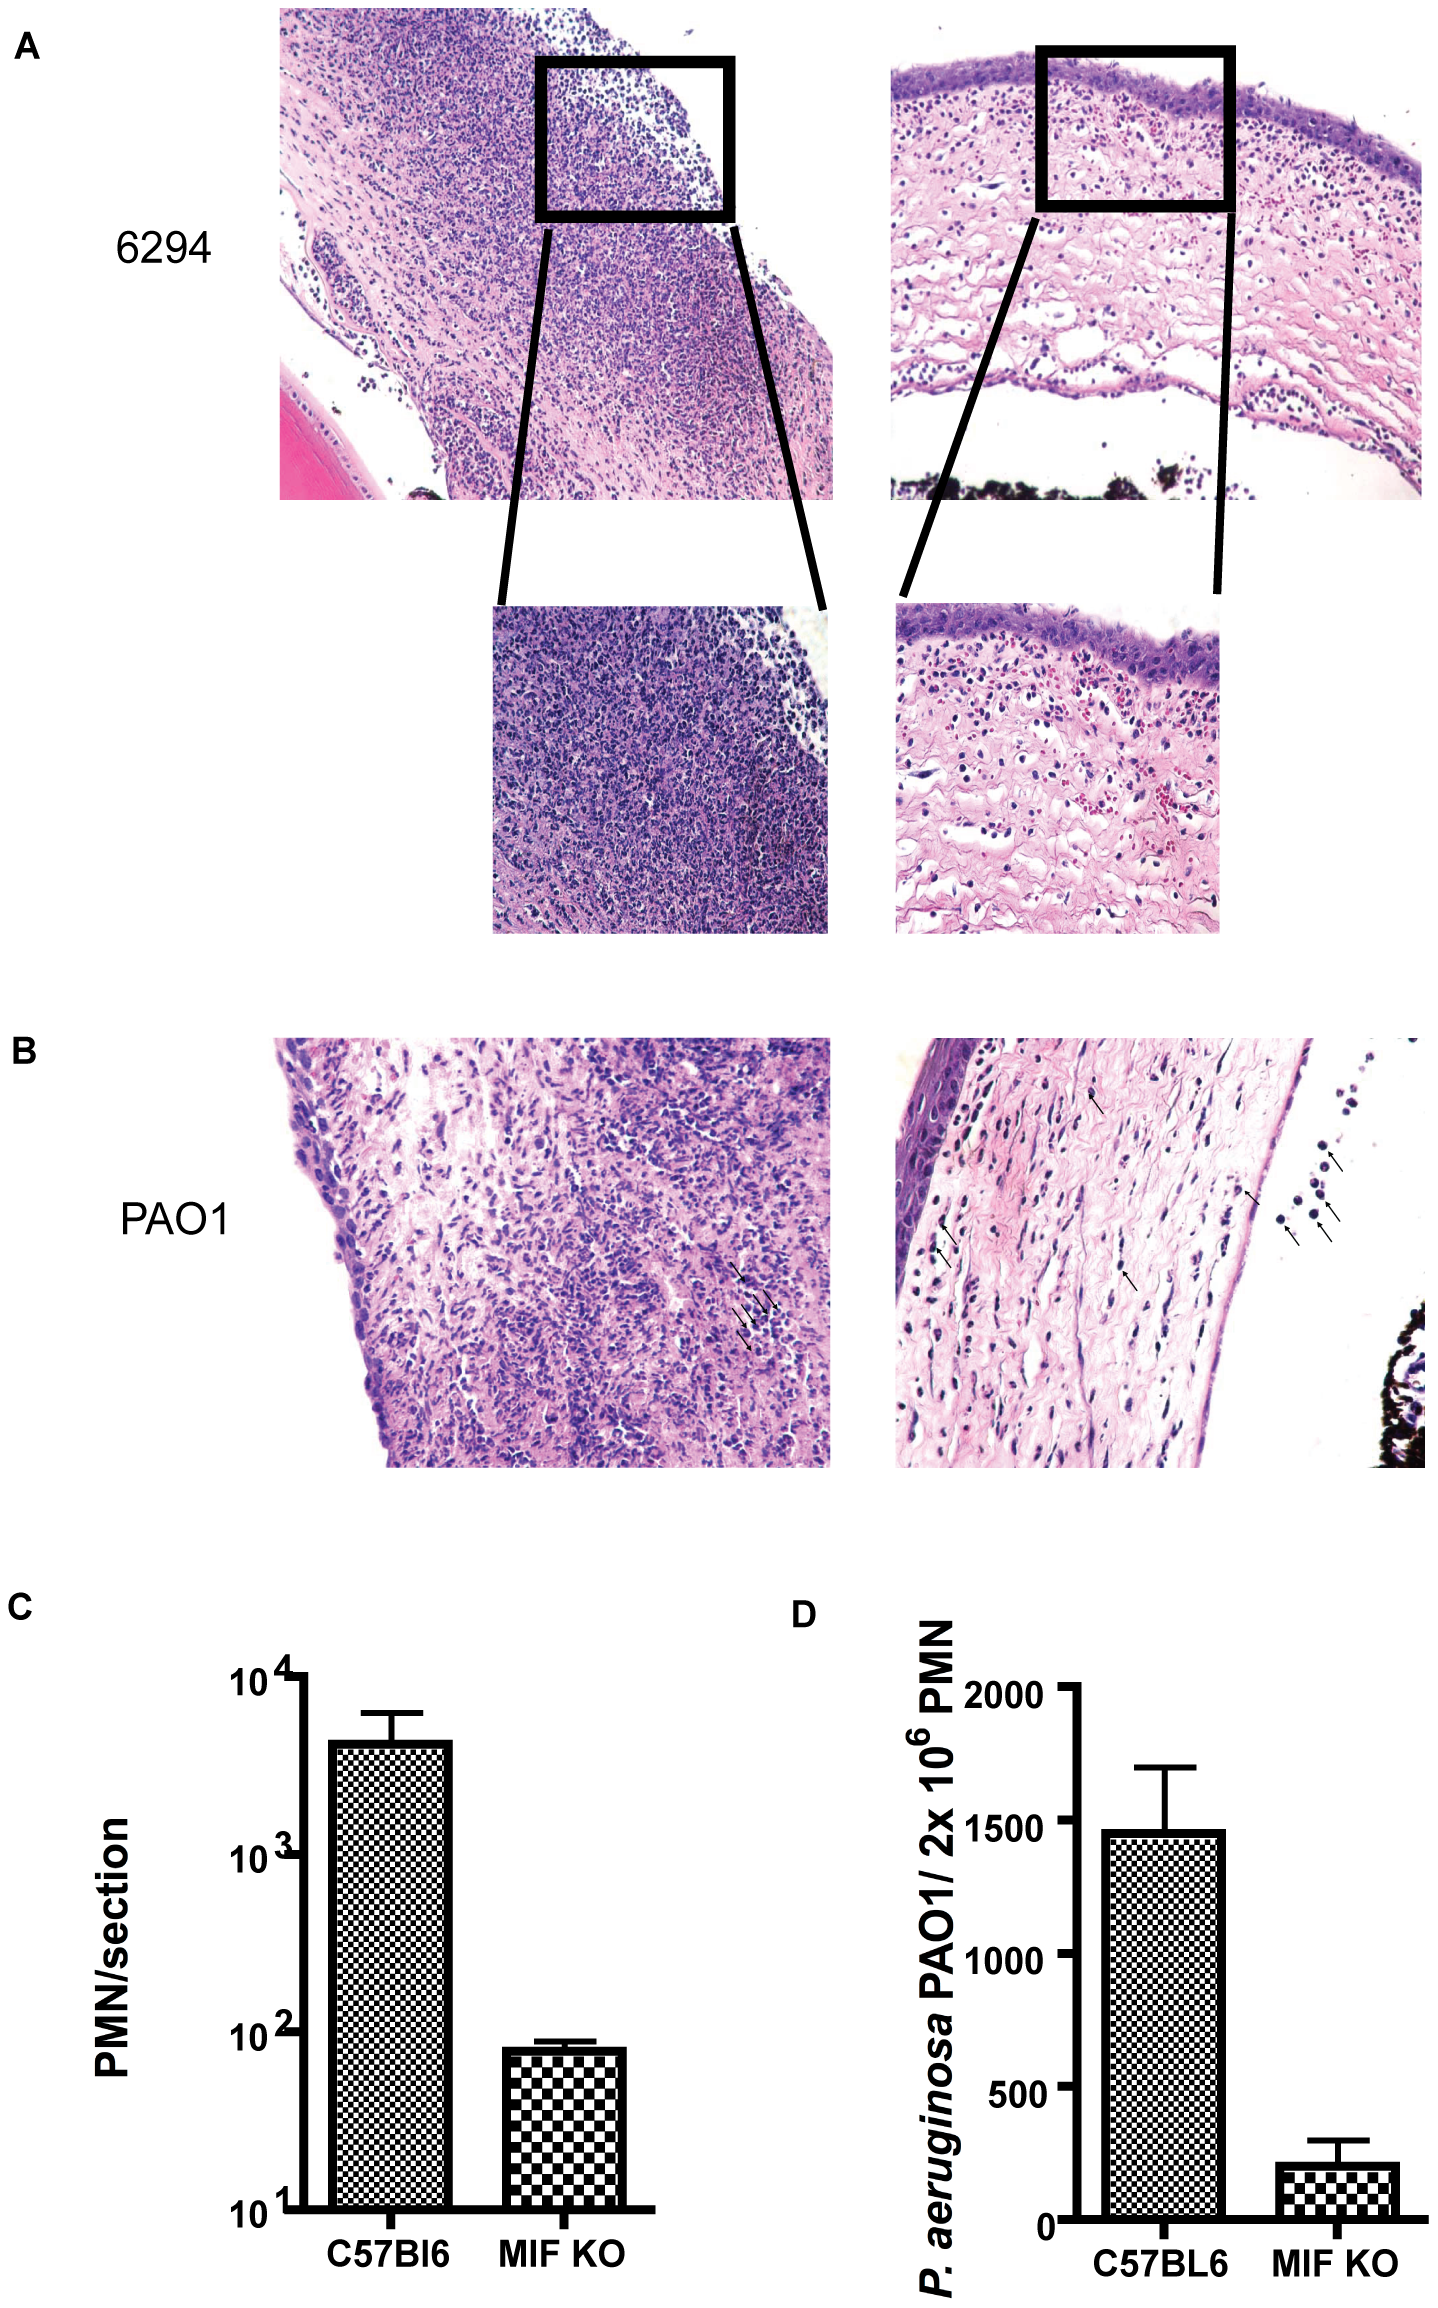 Histological examination of mouse corneas inoculated with <i>P. aeruginosa</i> 6294 or PAO1 at 48 h post-challenge.